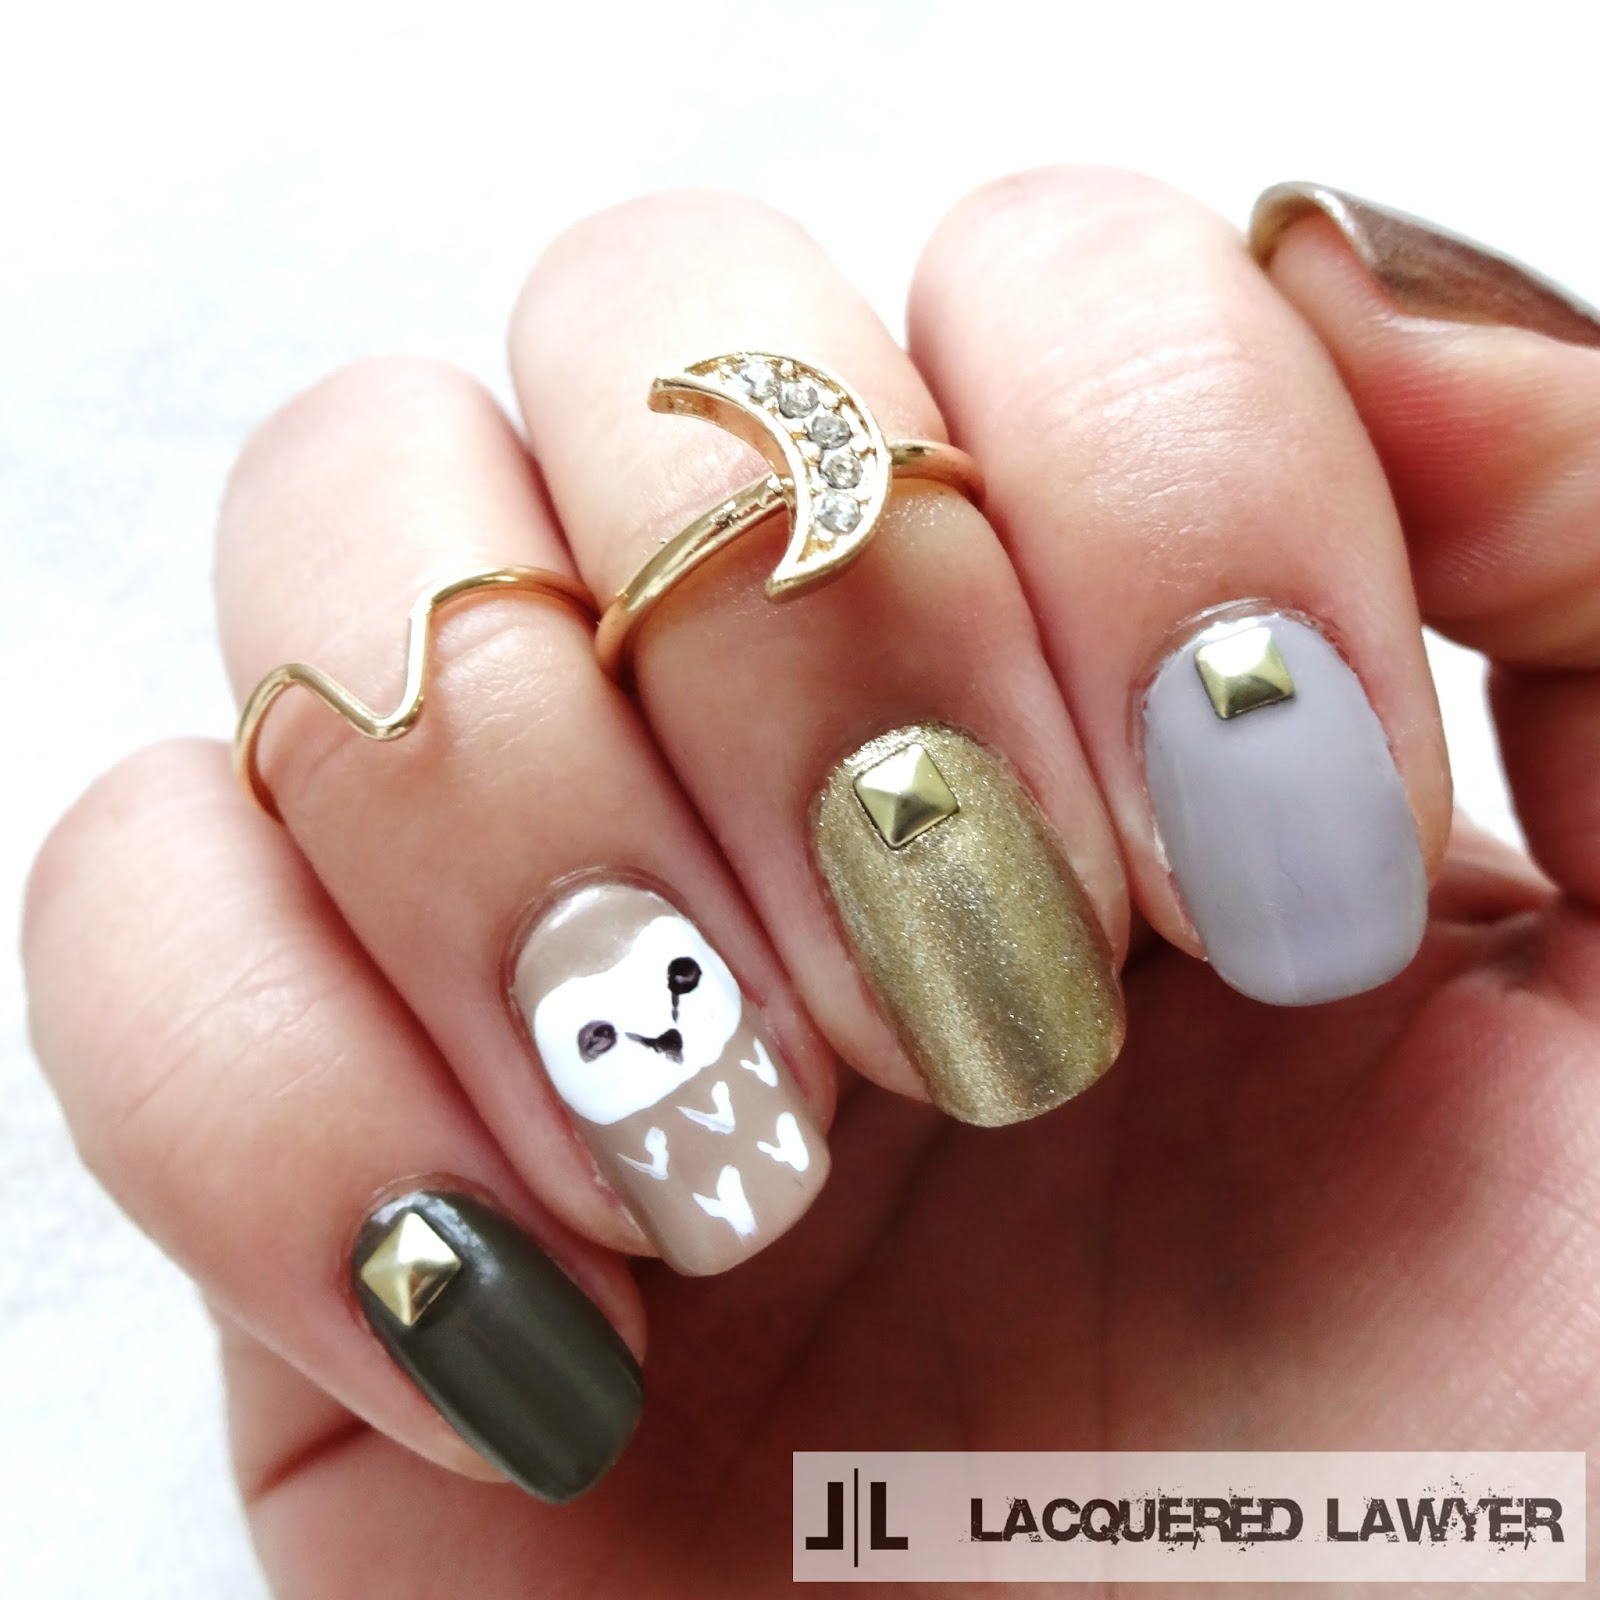 Lacquered Lawyer | Nail Art Blog: Neutral Nocturnal